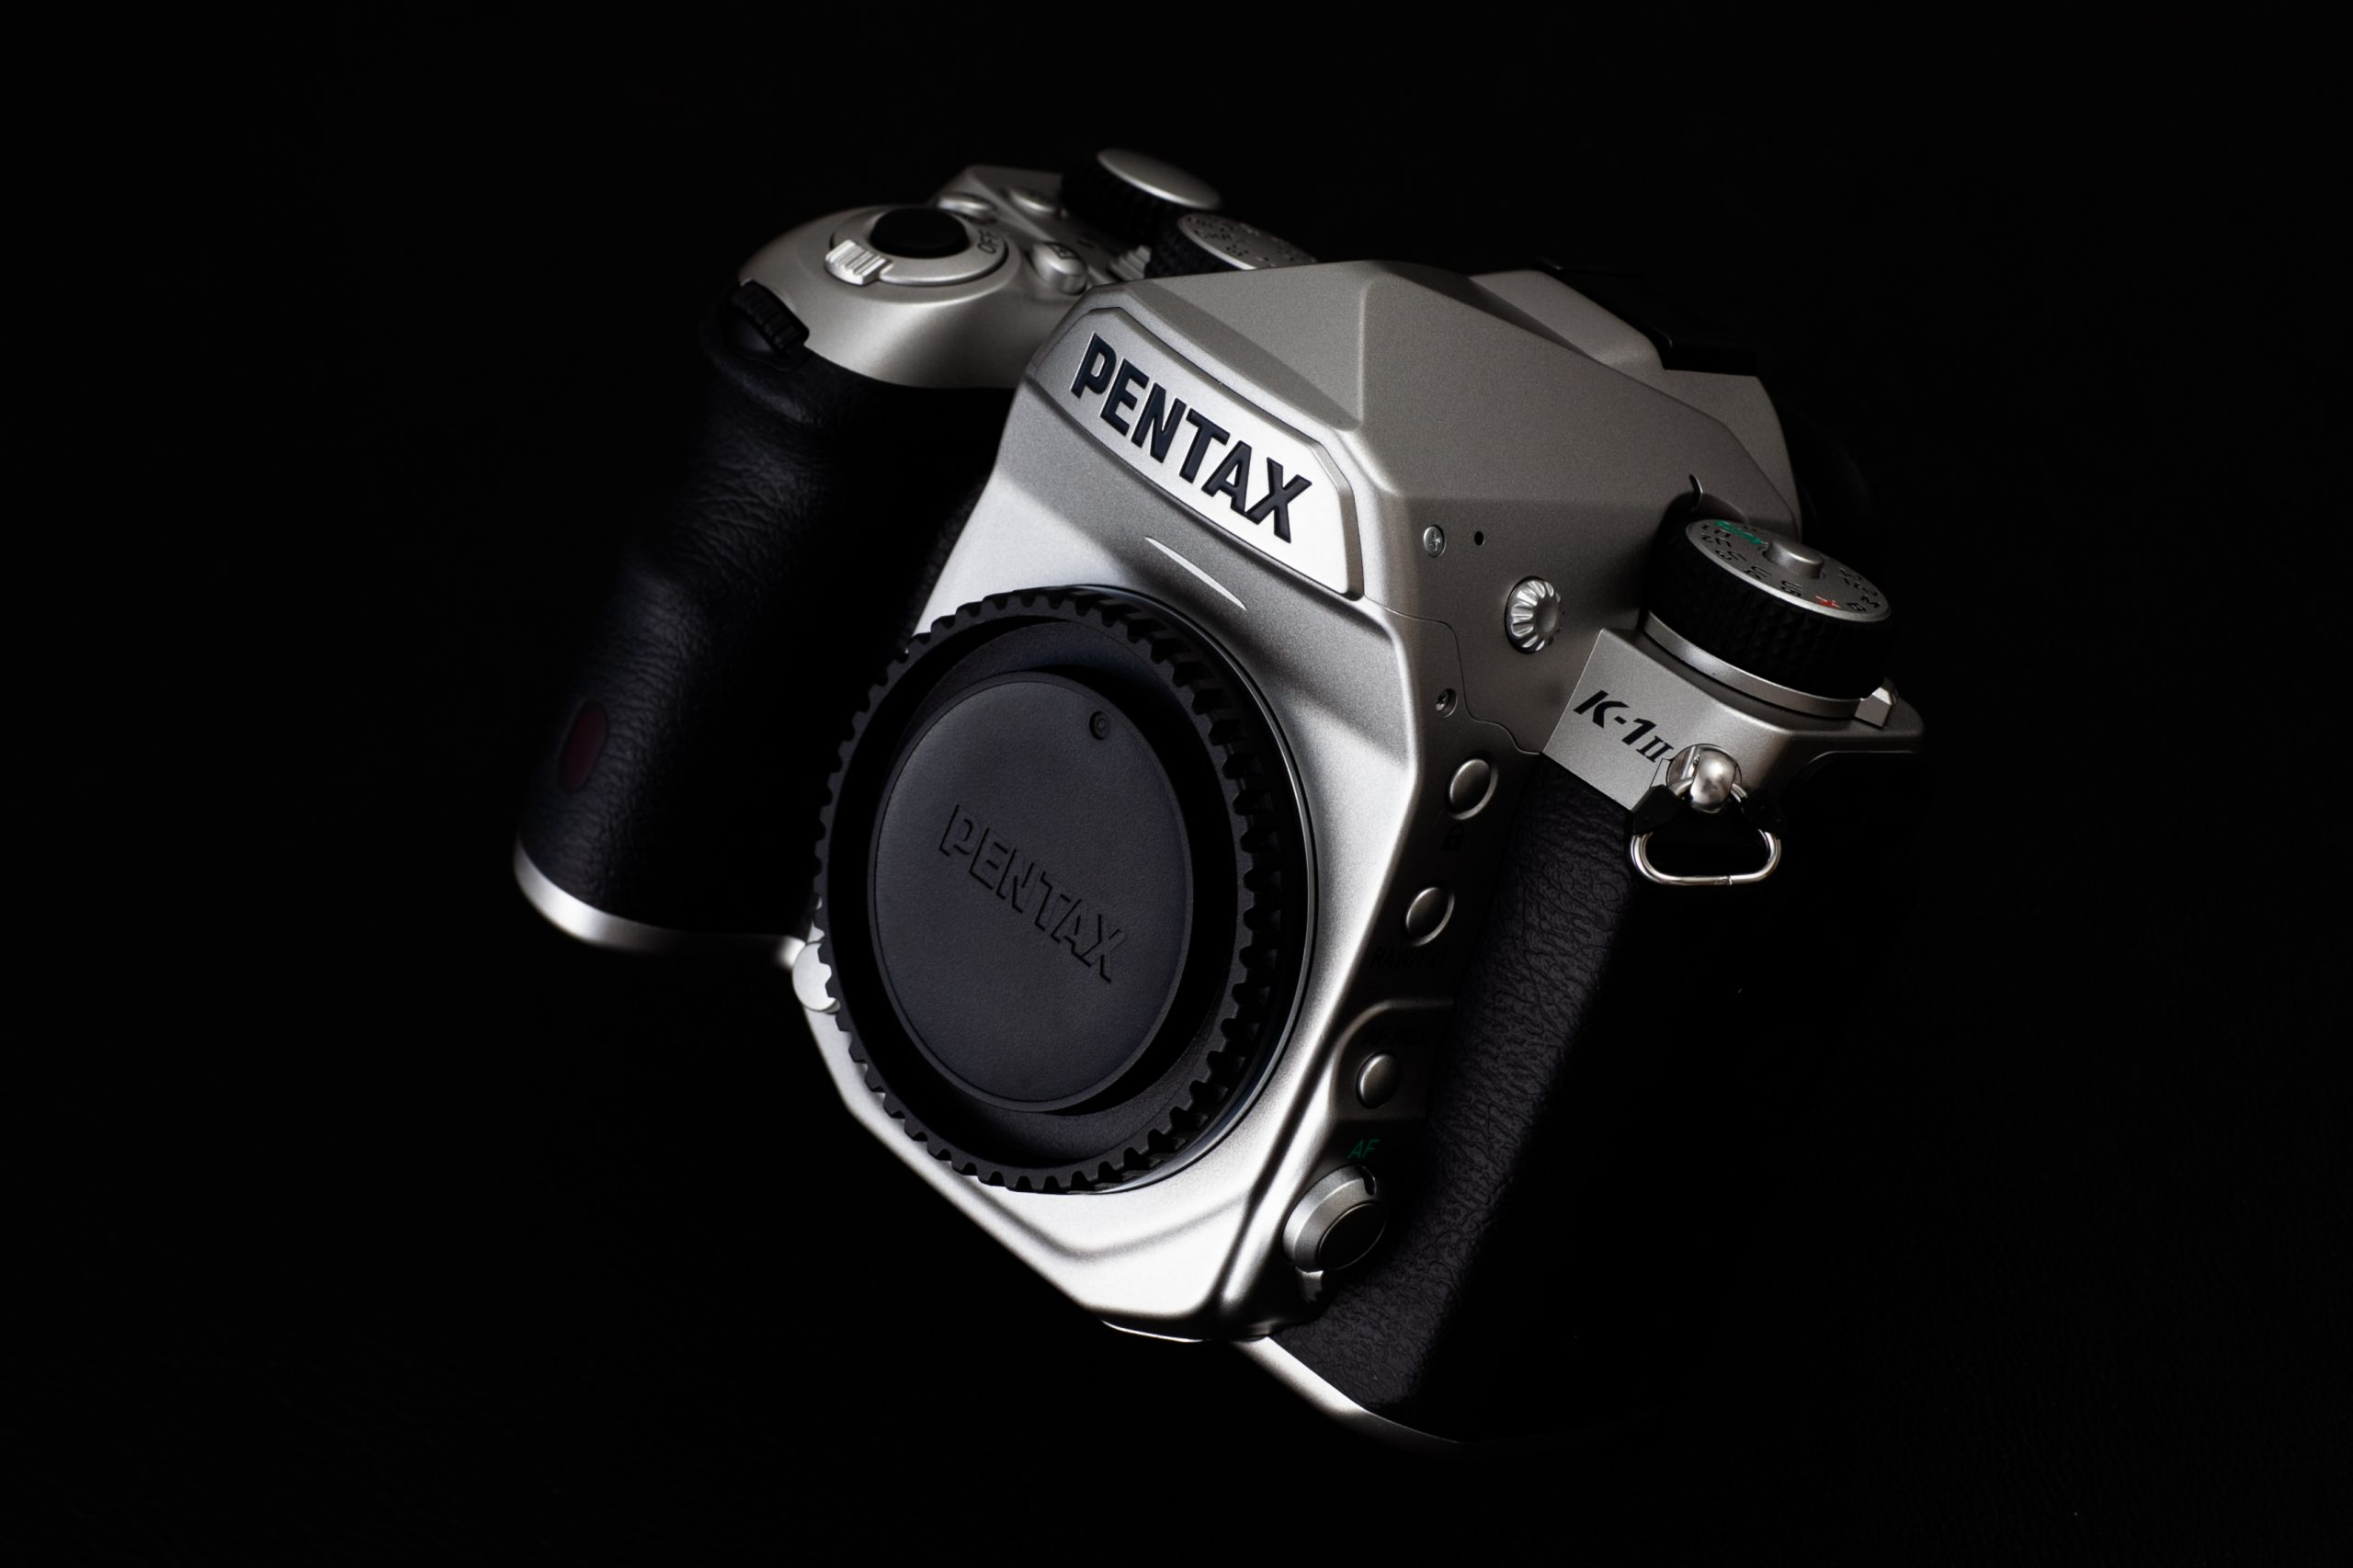 【PENTAX】K-1 Mark II Silver Edition 外観プレビュー